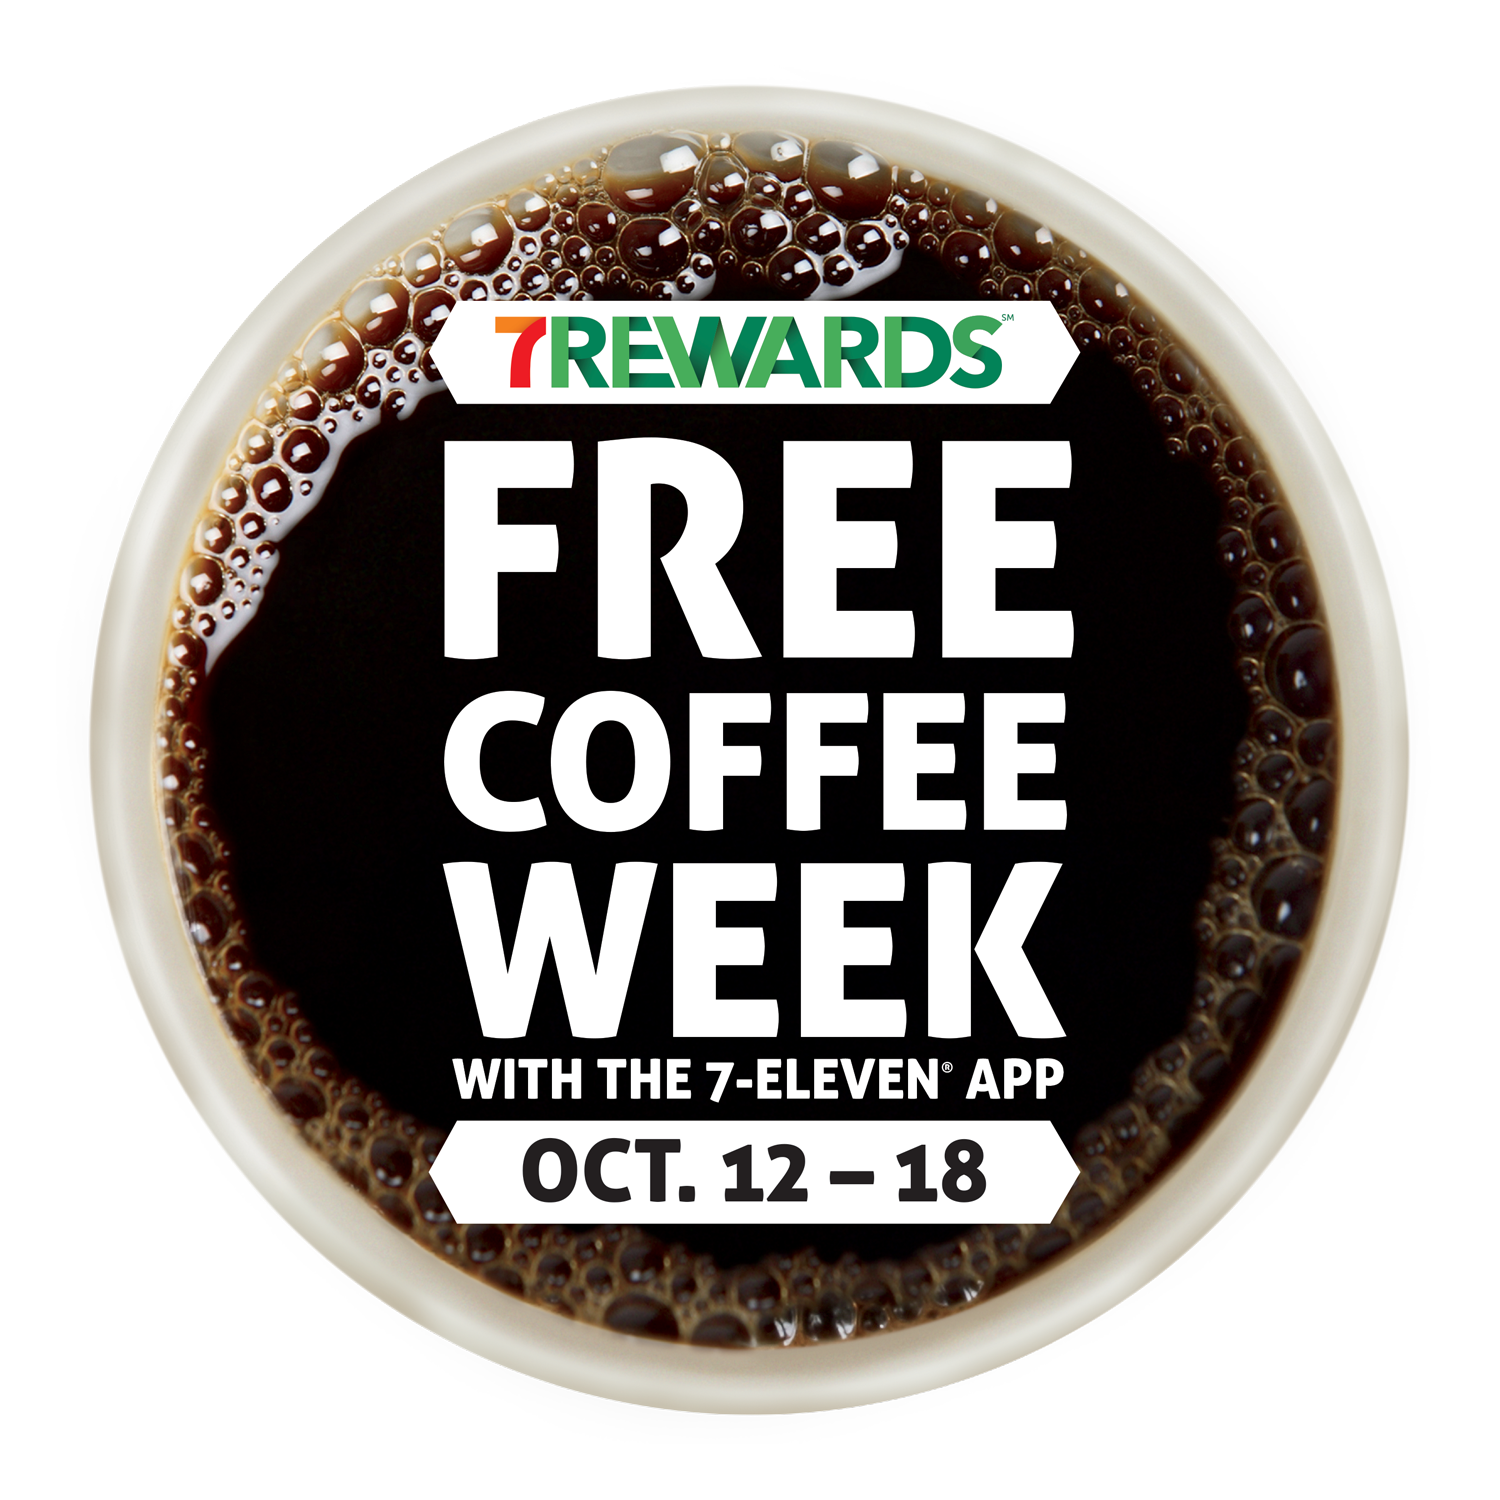 7Rewards™ Free Coffee Week runs from Monday, Oct. 12, through Sunday, Oct. 18, and includes a FREE any-size hot beverage every day through the 7‑Eleven app.